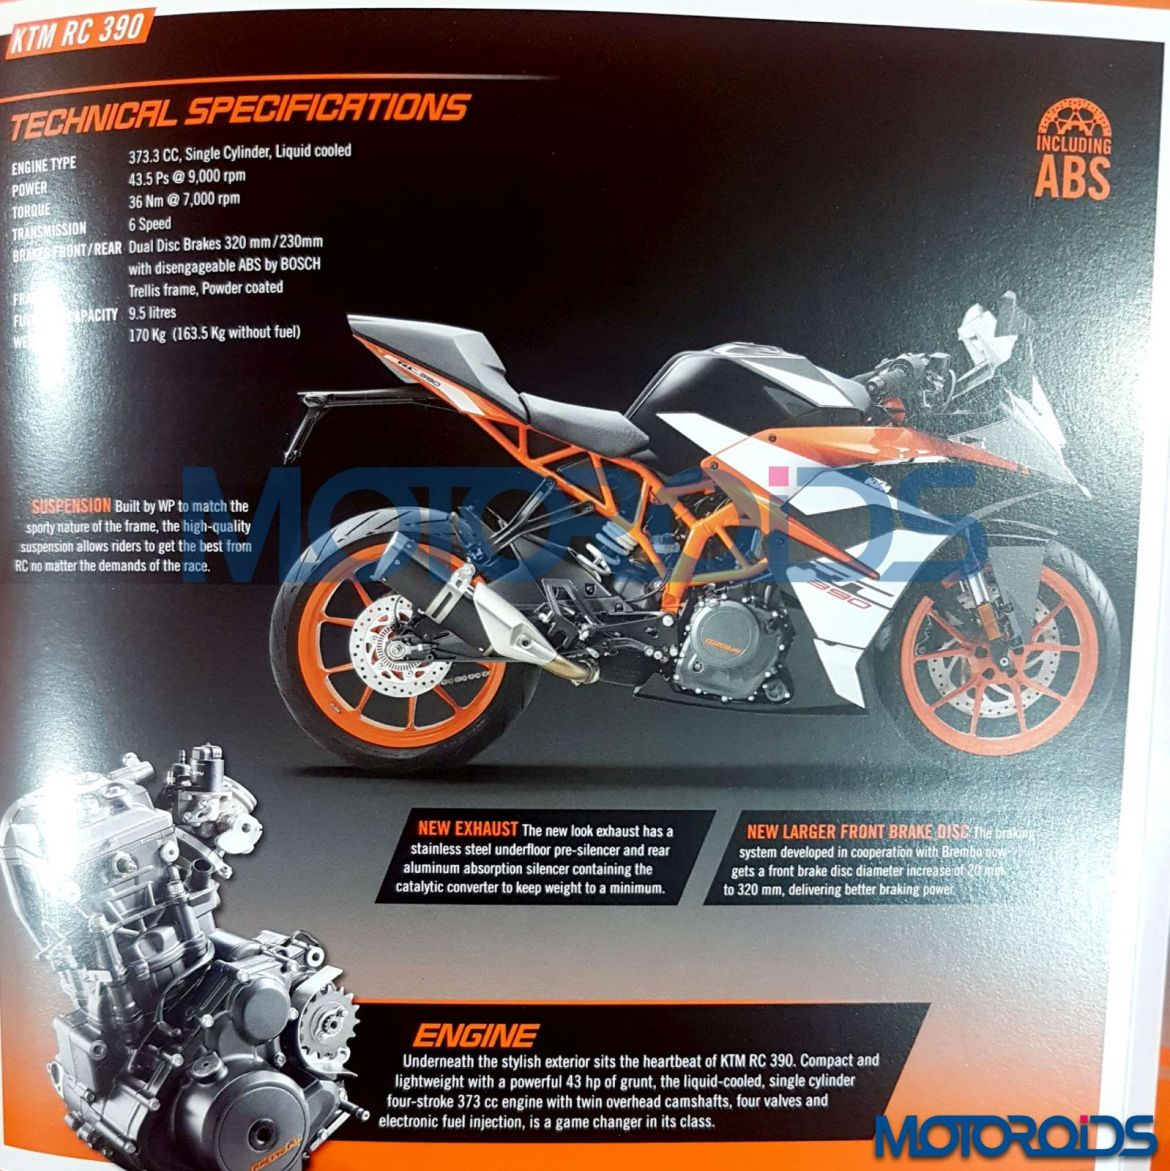 2017 ktm rc 390 price, specification, reviews and brochure